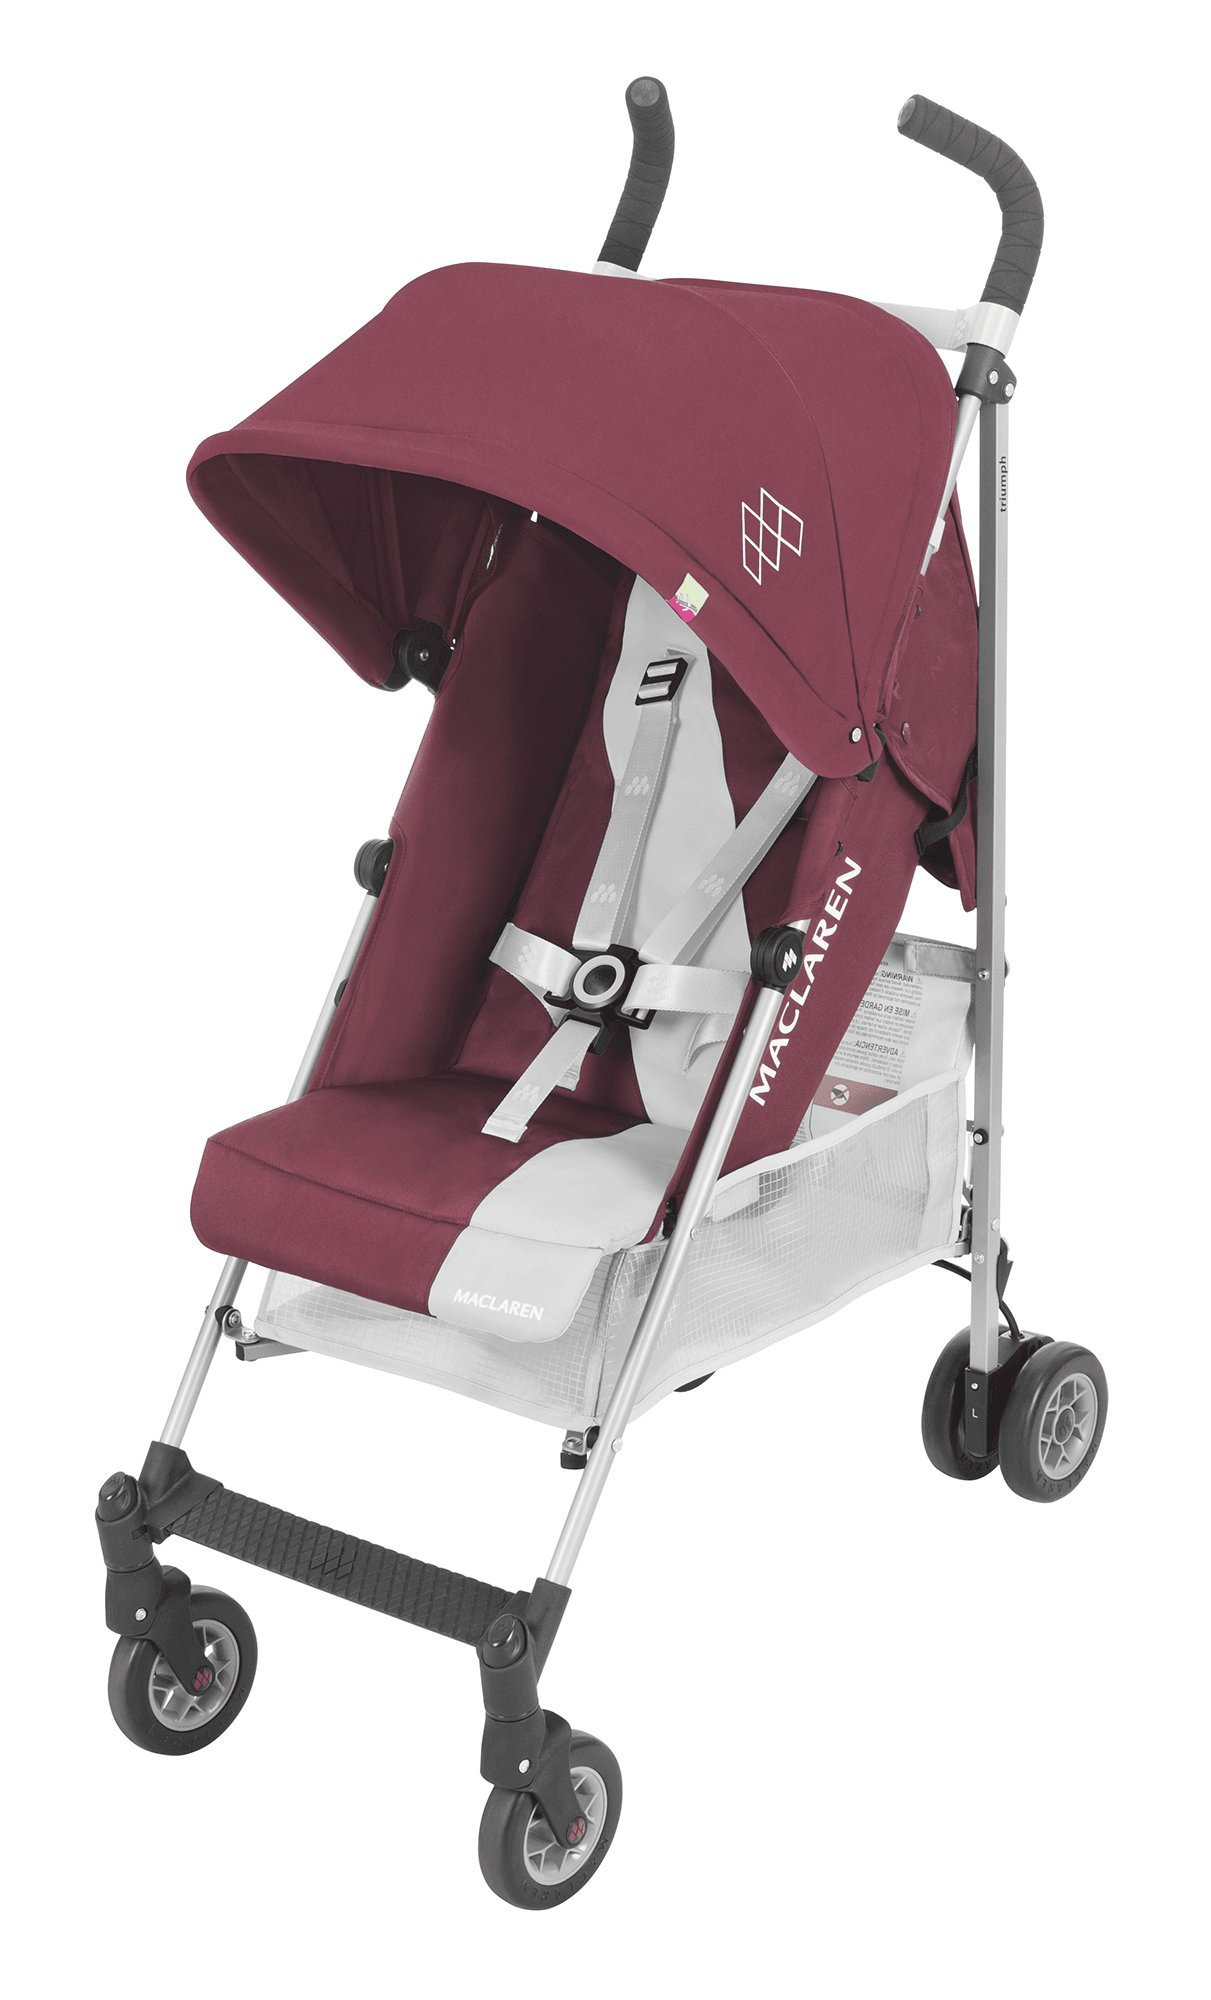 Maclaren Triumph Stroller - lightweight, compact Maclaren Basic weight of 5kg/ 11lb; ideal for children 6 months and up to 25kg/55lb Maclaren is the only brand to offer a sovereign lifetime warranty Extendable upf 50+ sun canopy and built-in sun visor 1